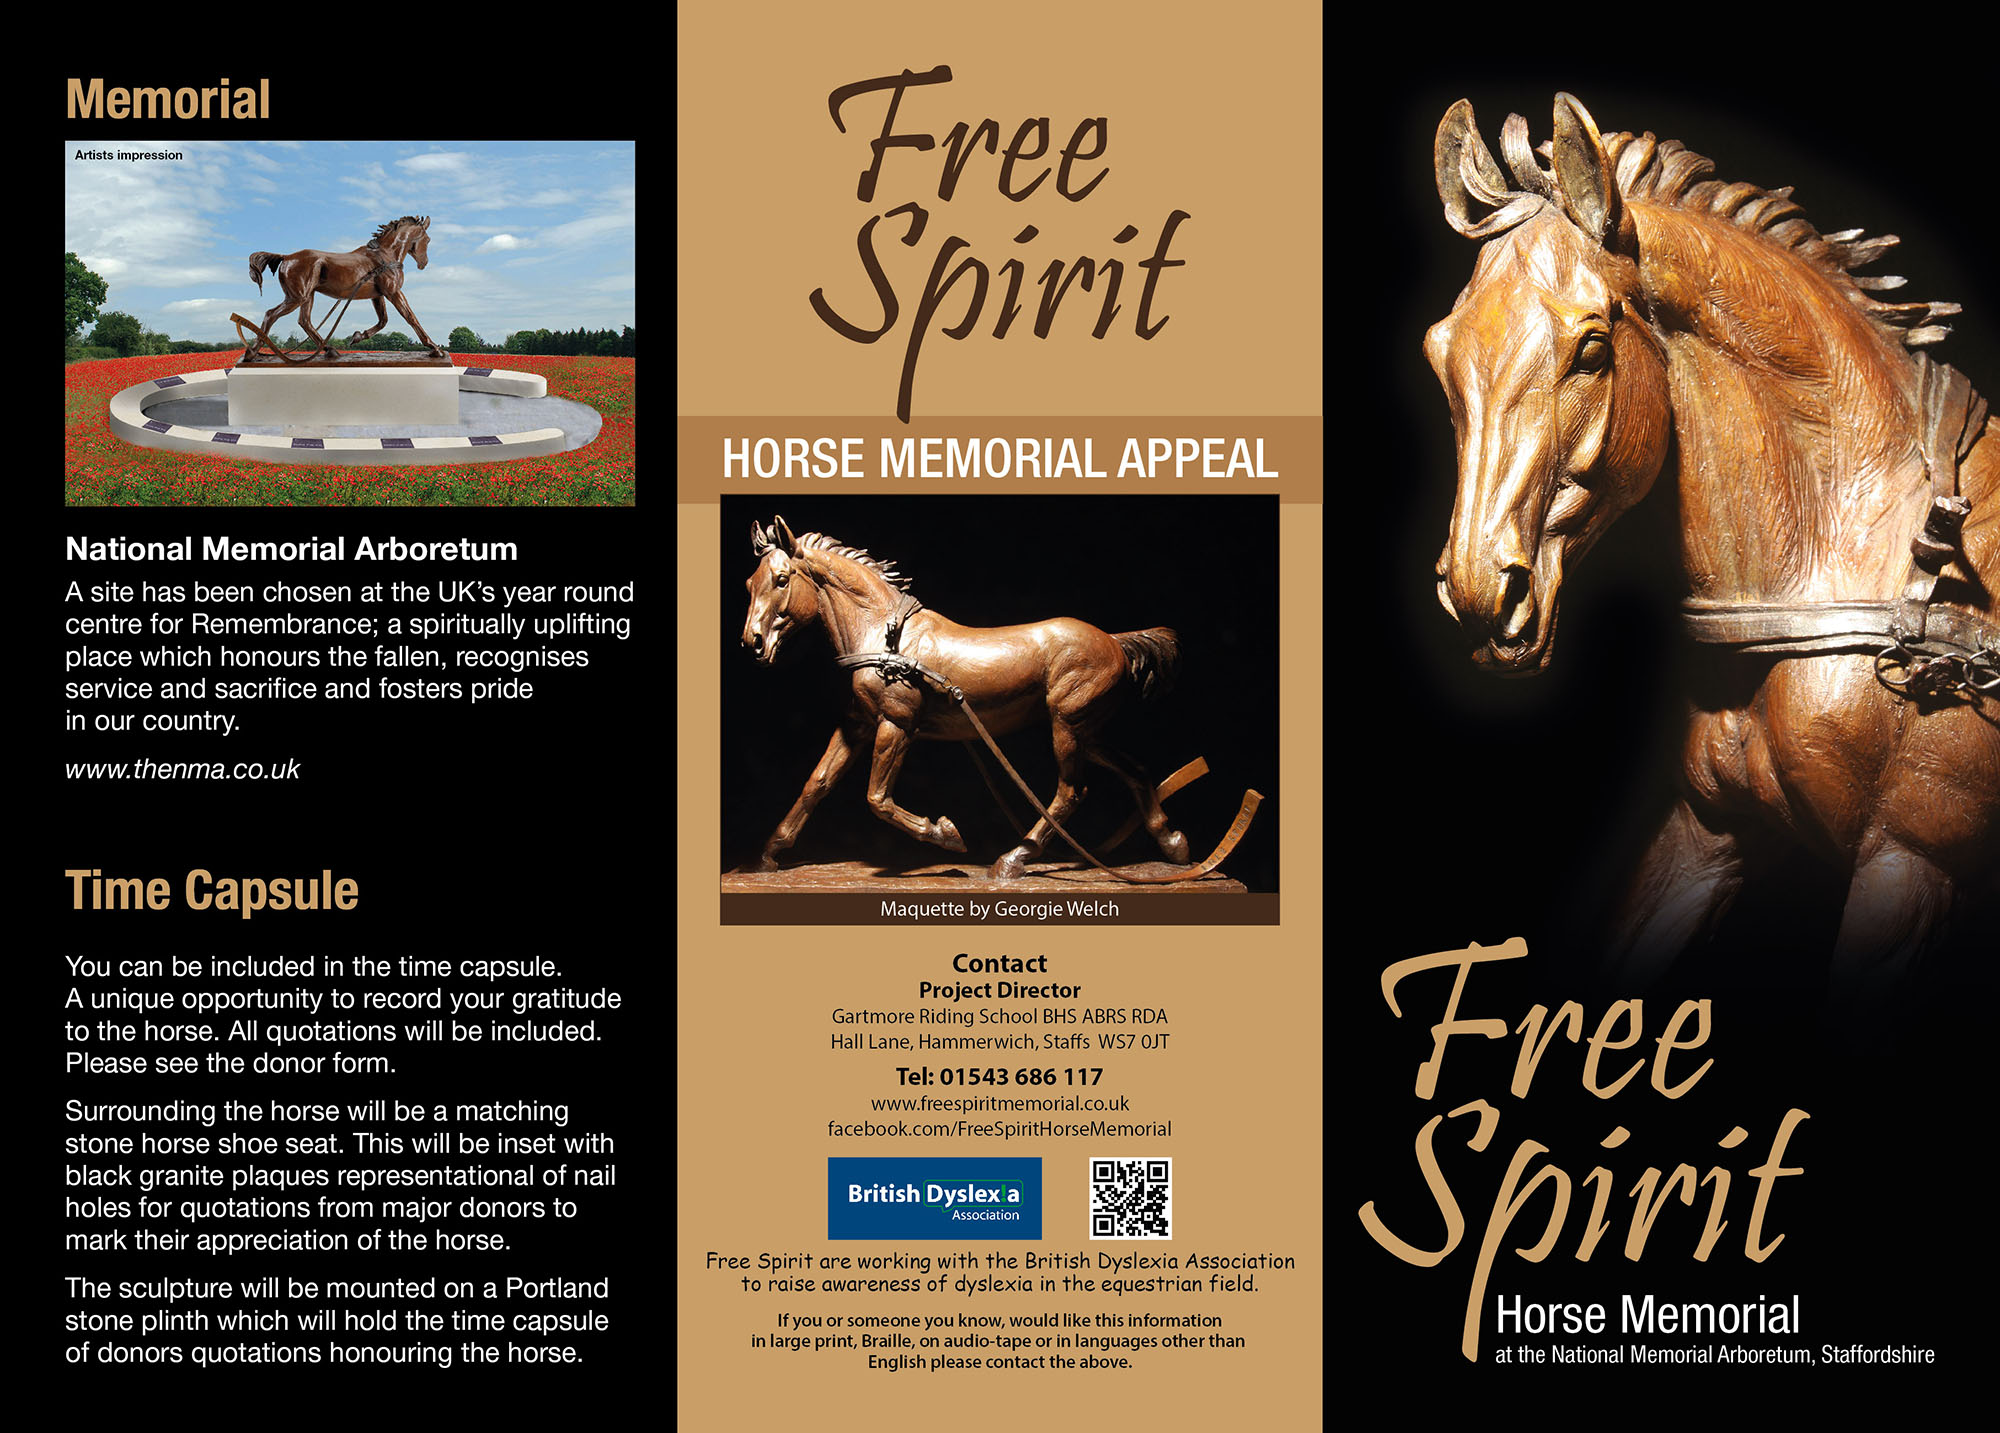 Free Spirit Horse Memorial - Free Spirit Horse Memorial Appeal - Art Competition